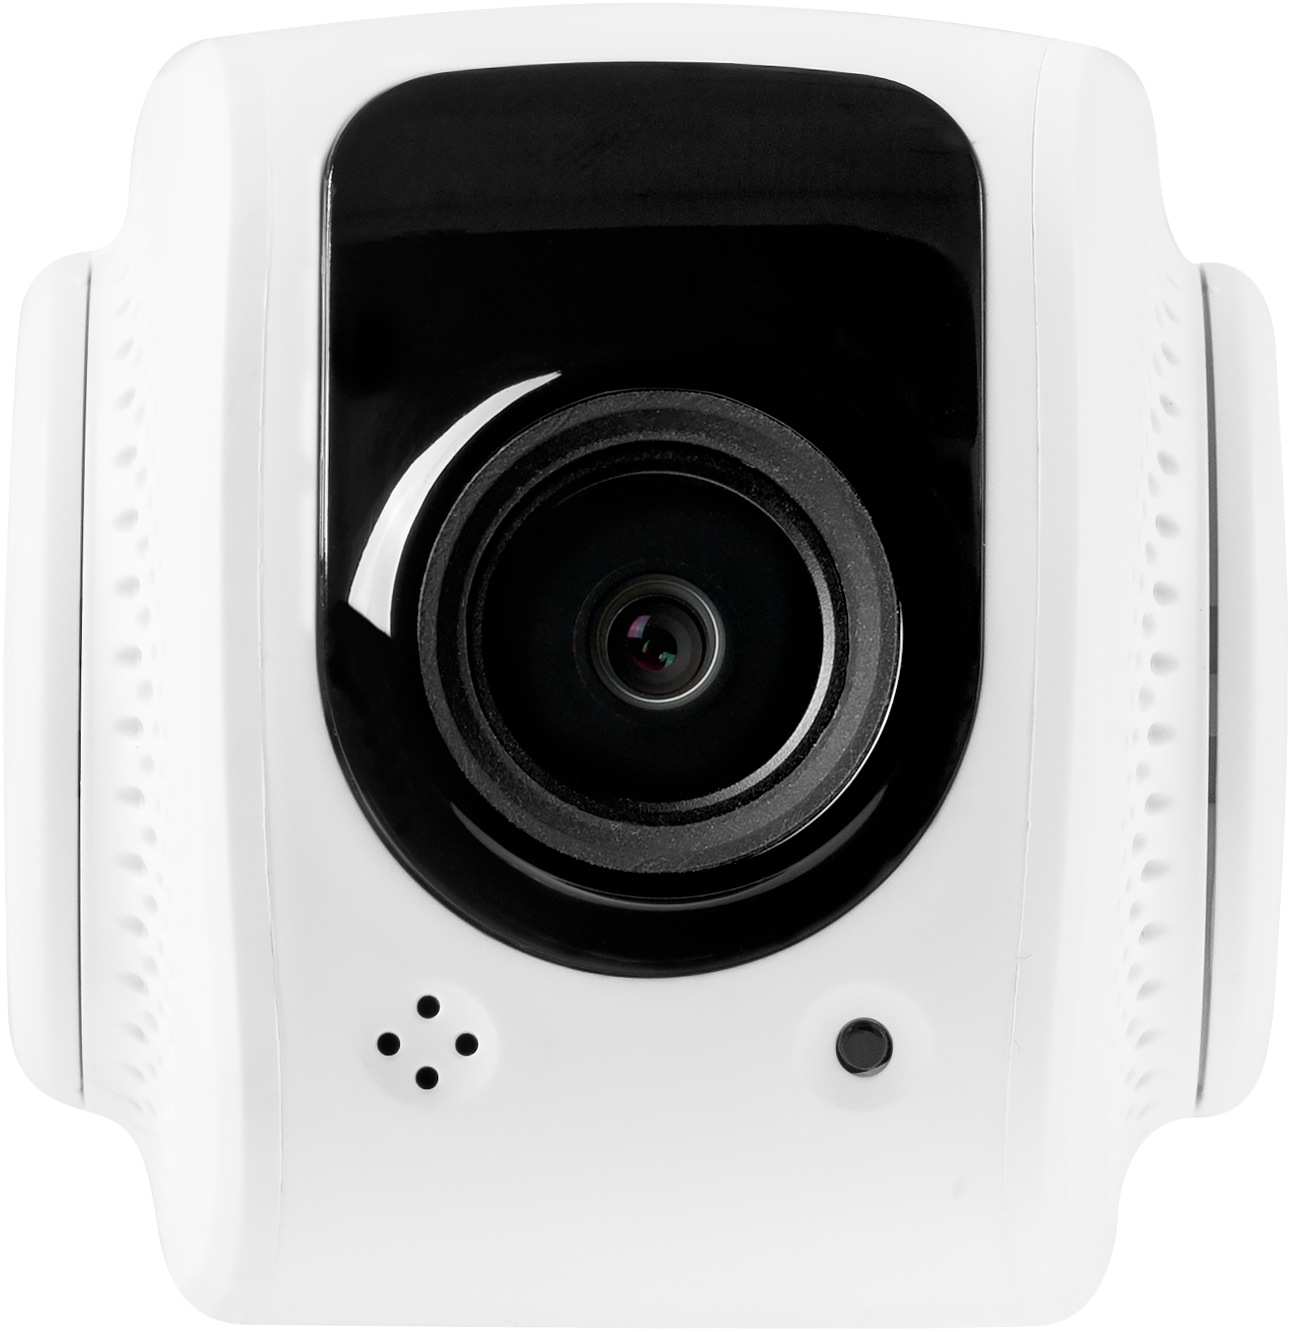 Tend Secure Lynx Indoor HD Wi-Fi Video Monitoring Security Camera with Facial Recognition (White)